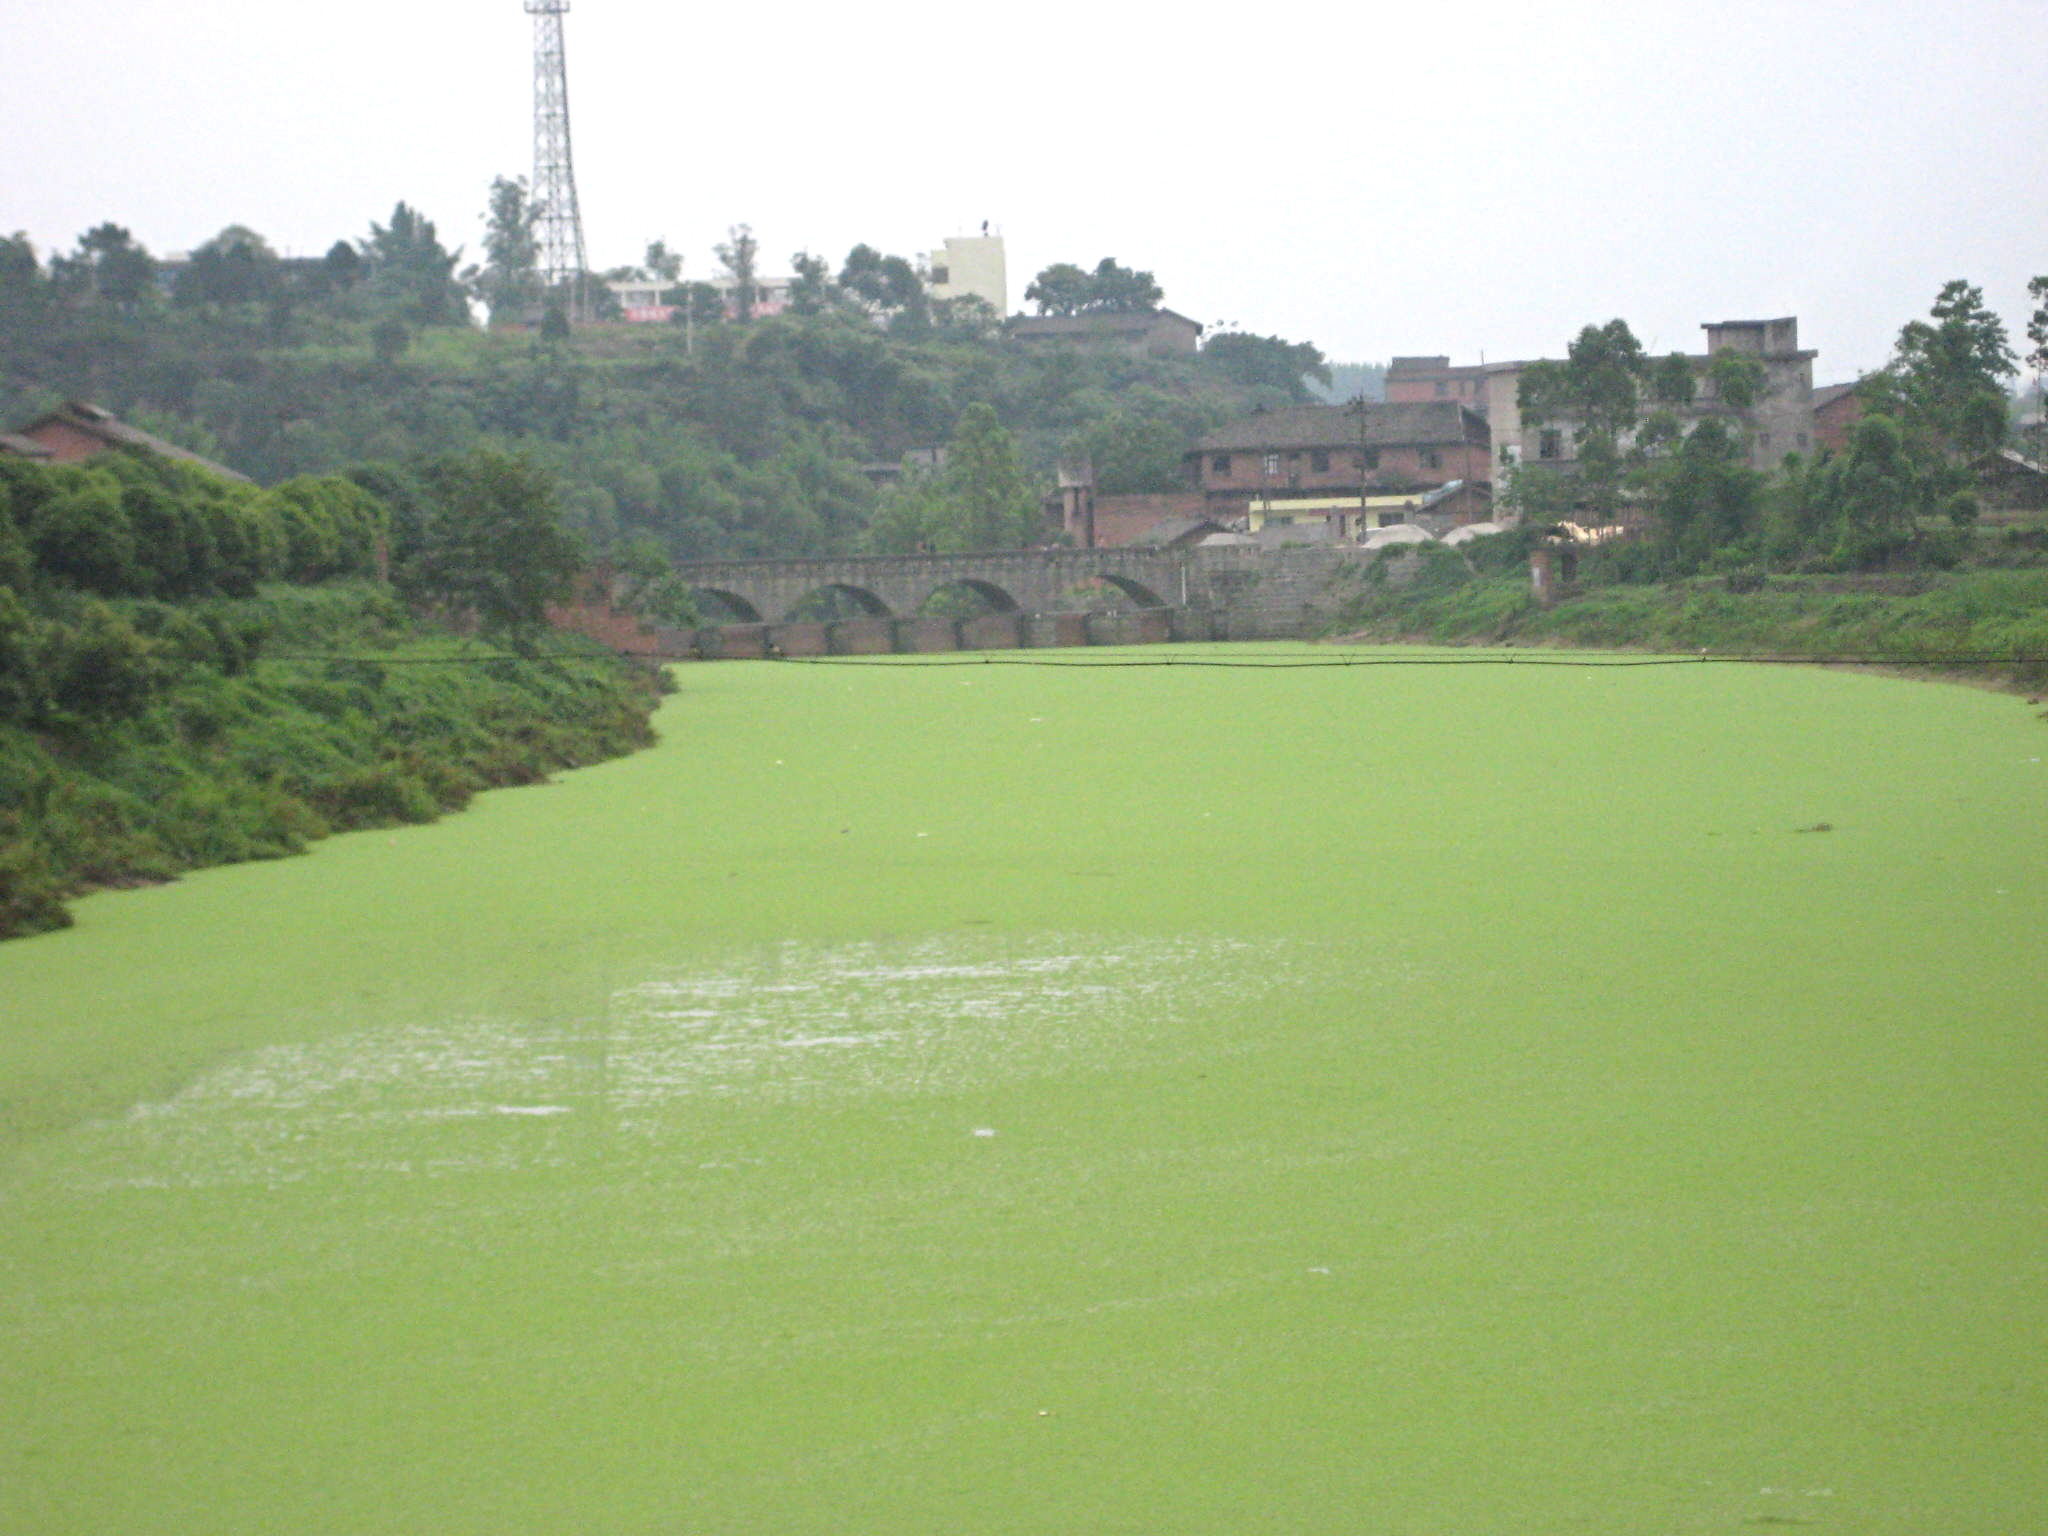 agricultural pollution Essays - largest database of quality sample essays and research papers on agricultural pollution.